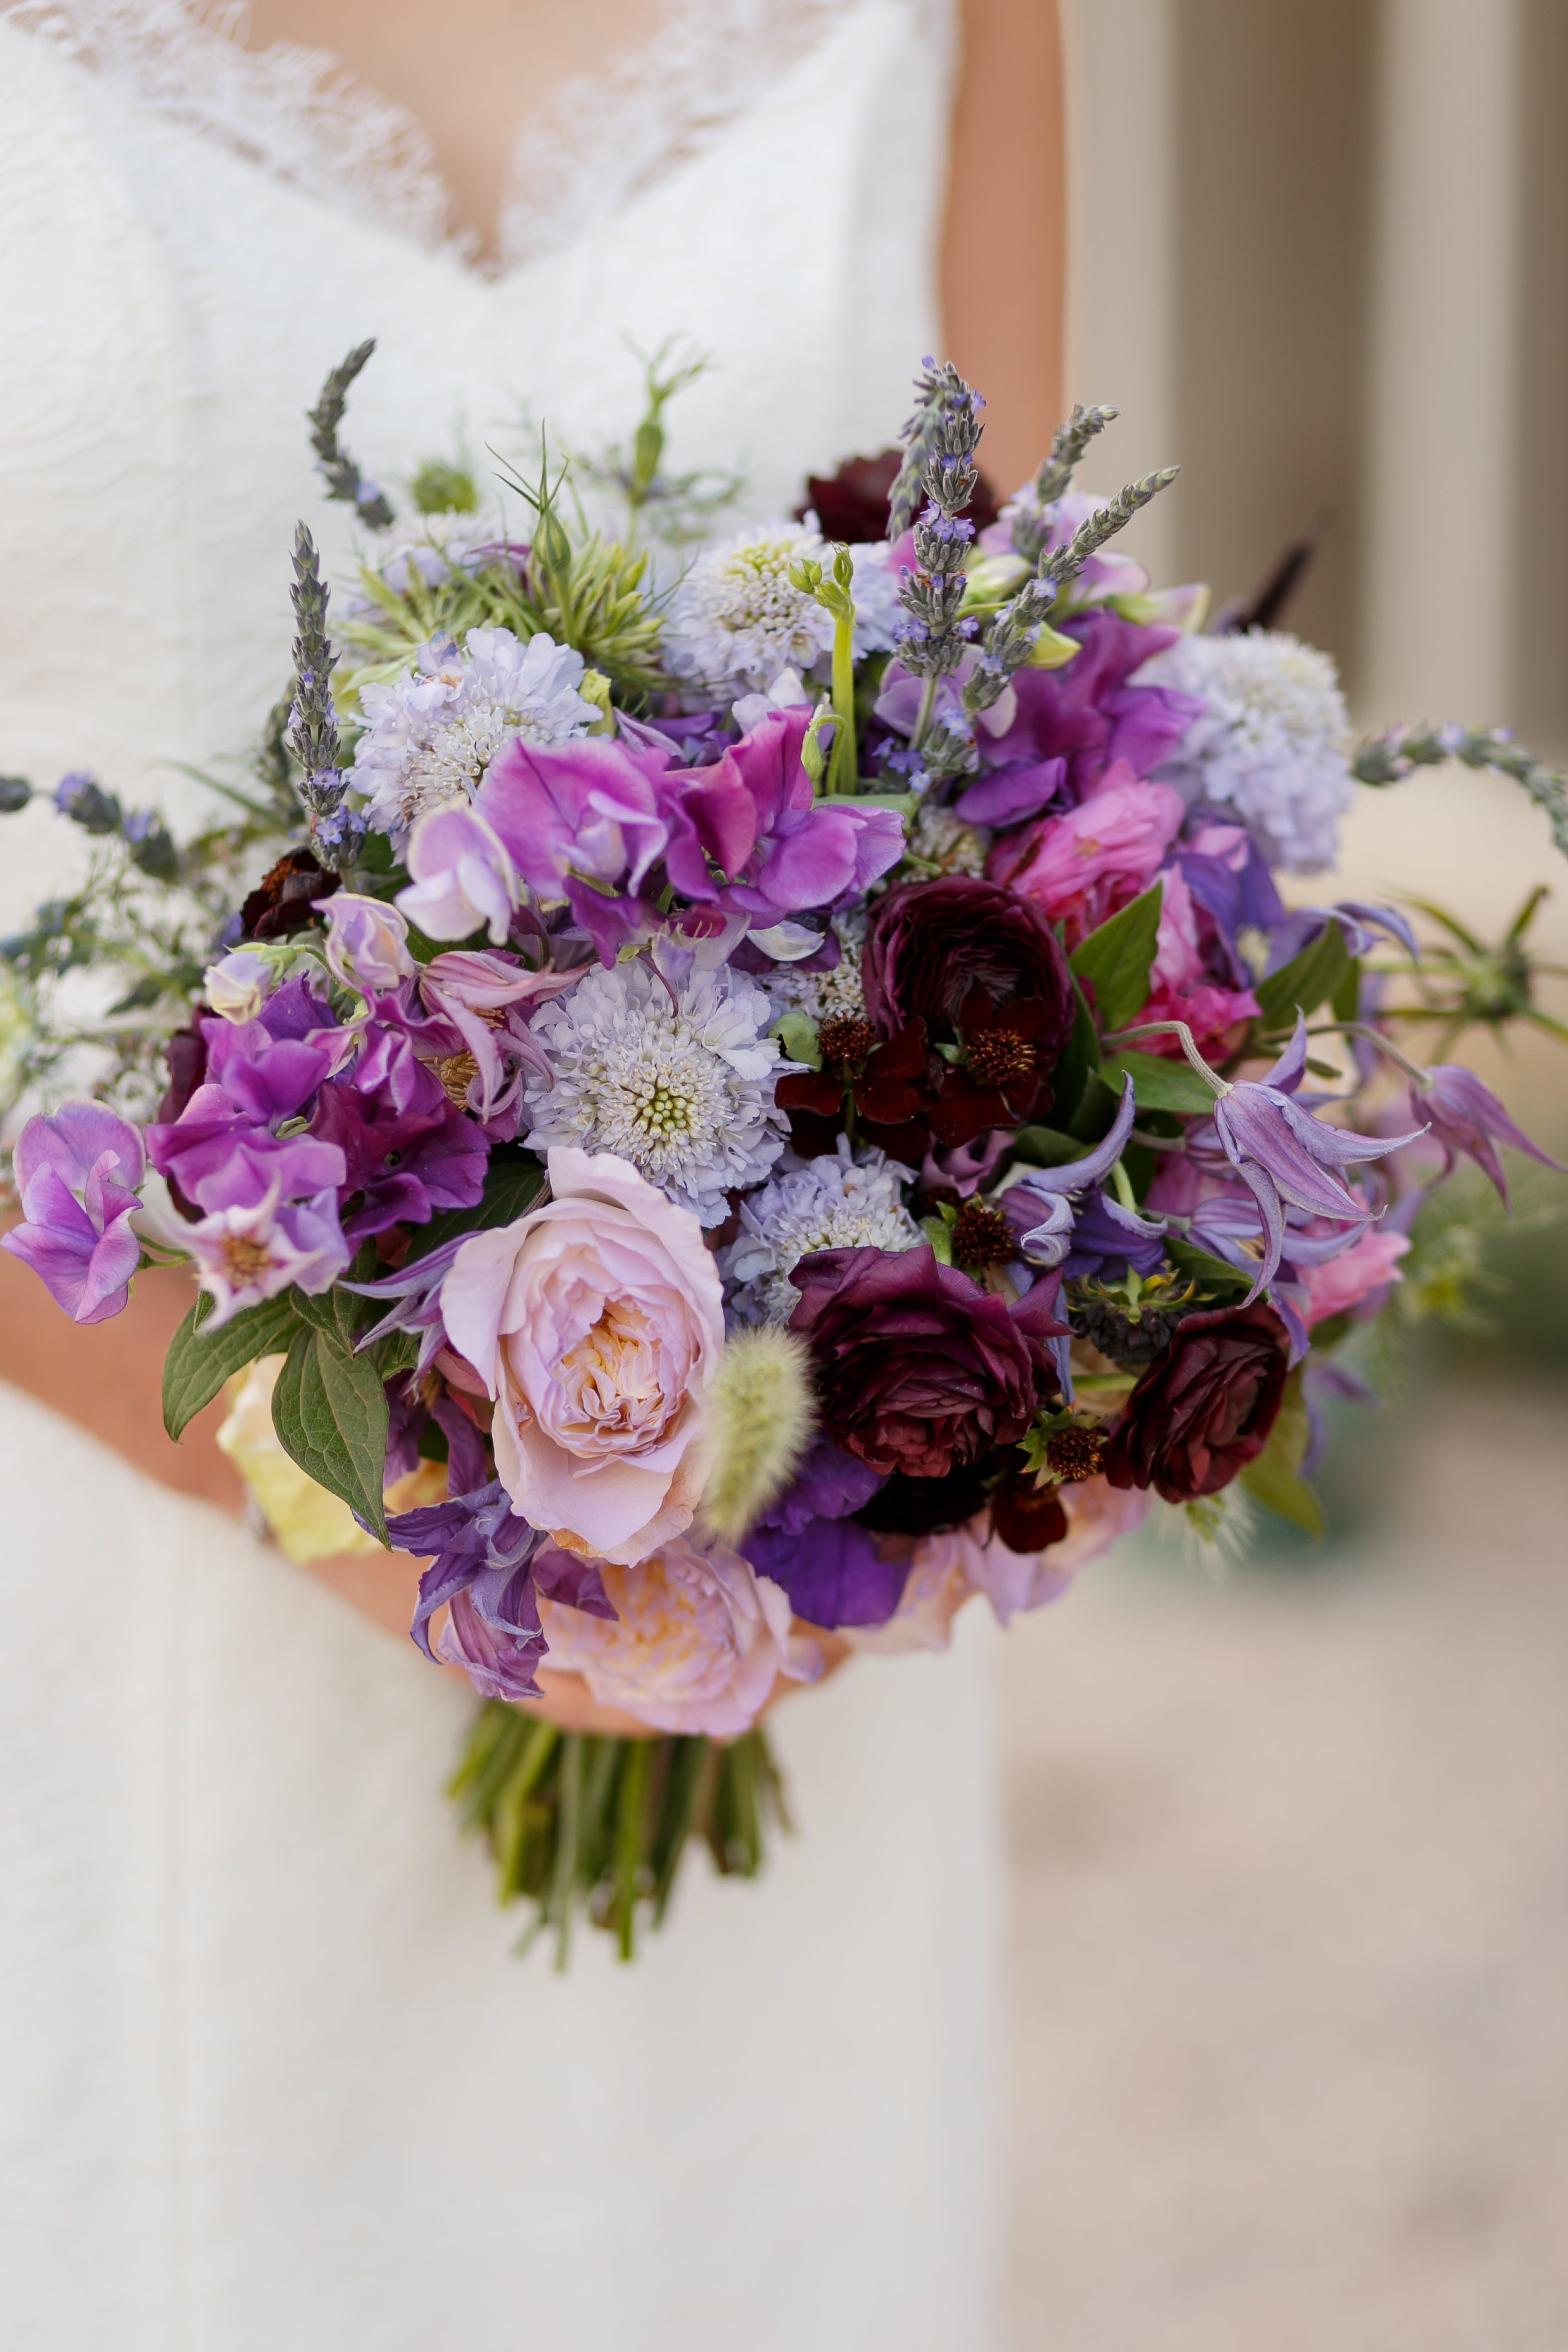 Purple Bouquet of Lavender, Bluebells and Wildflowers